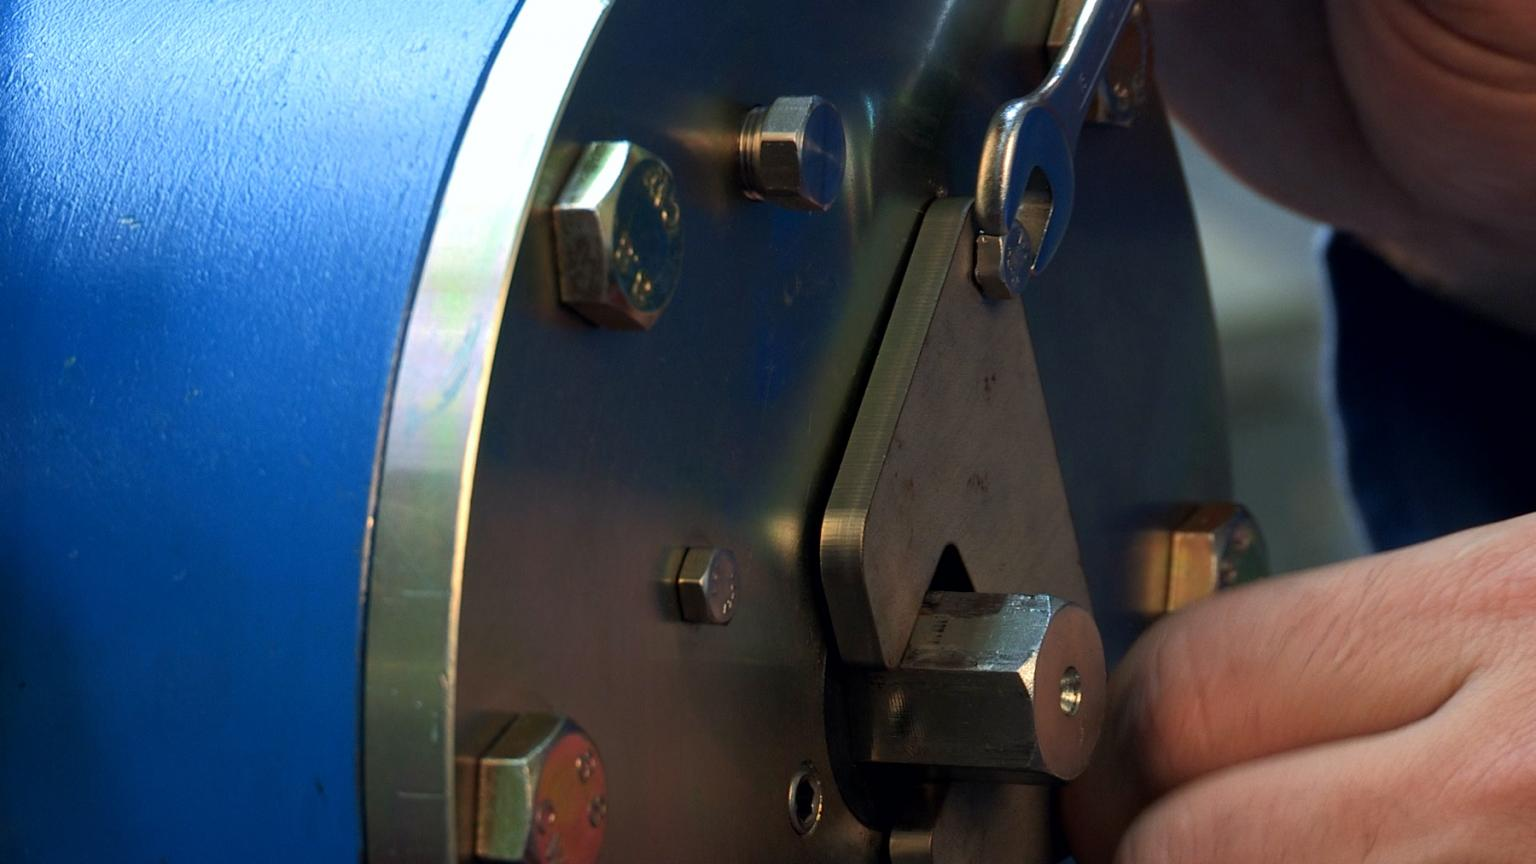 Removal of the spindle locking plate is quick and simple